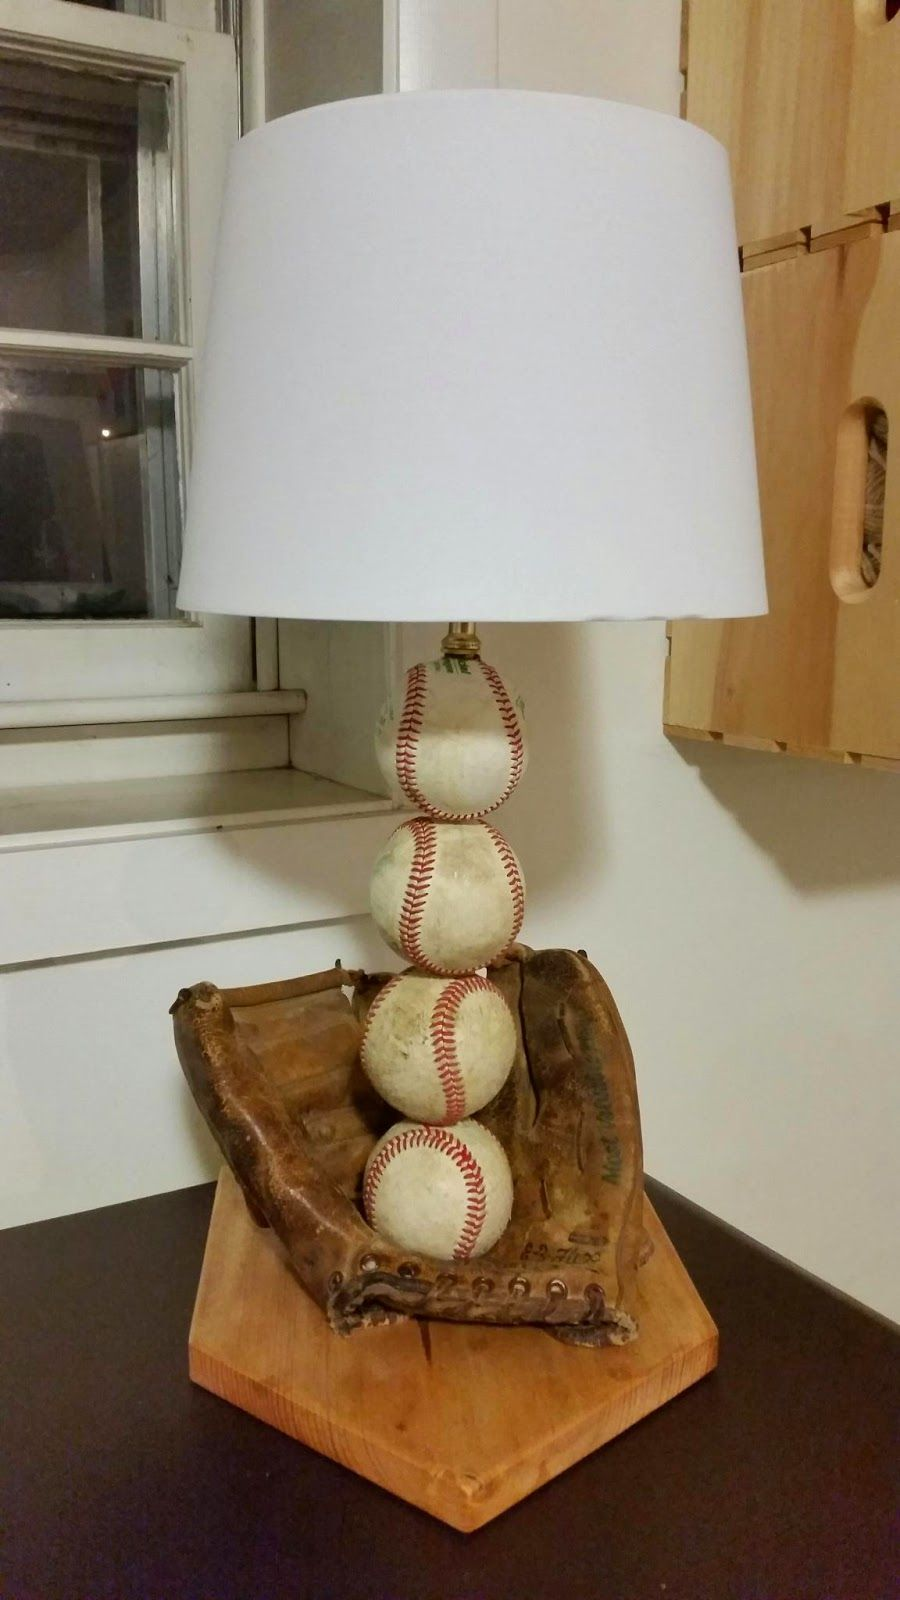 diy baseball lampthe perfect gift for a baseball fan this is a great project for a beginner or advance diyer - Baseball Lamp